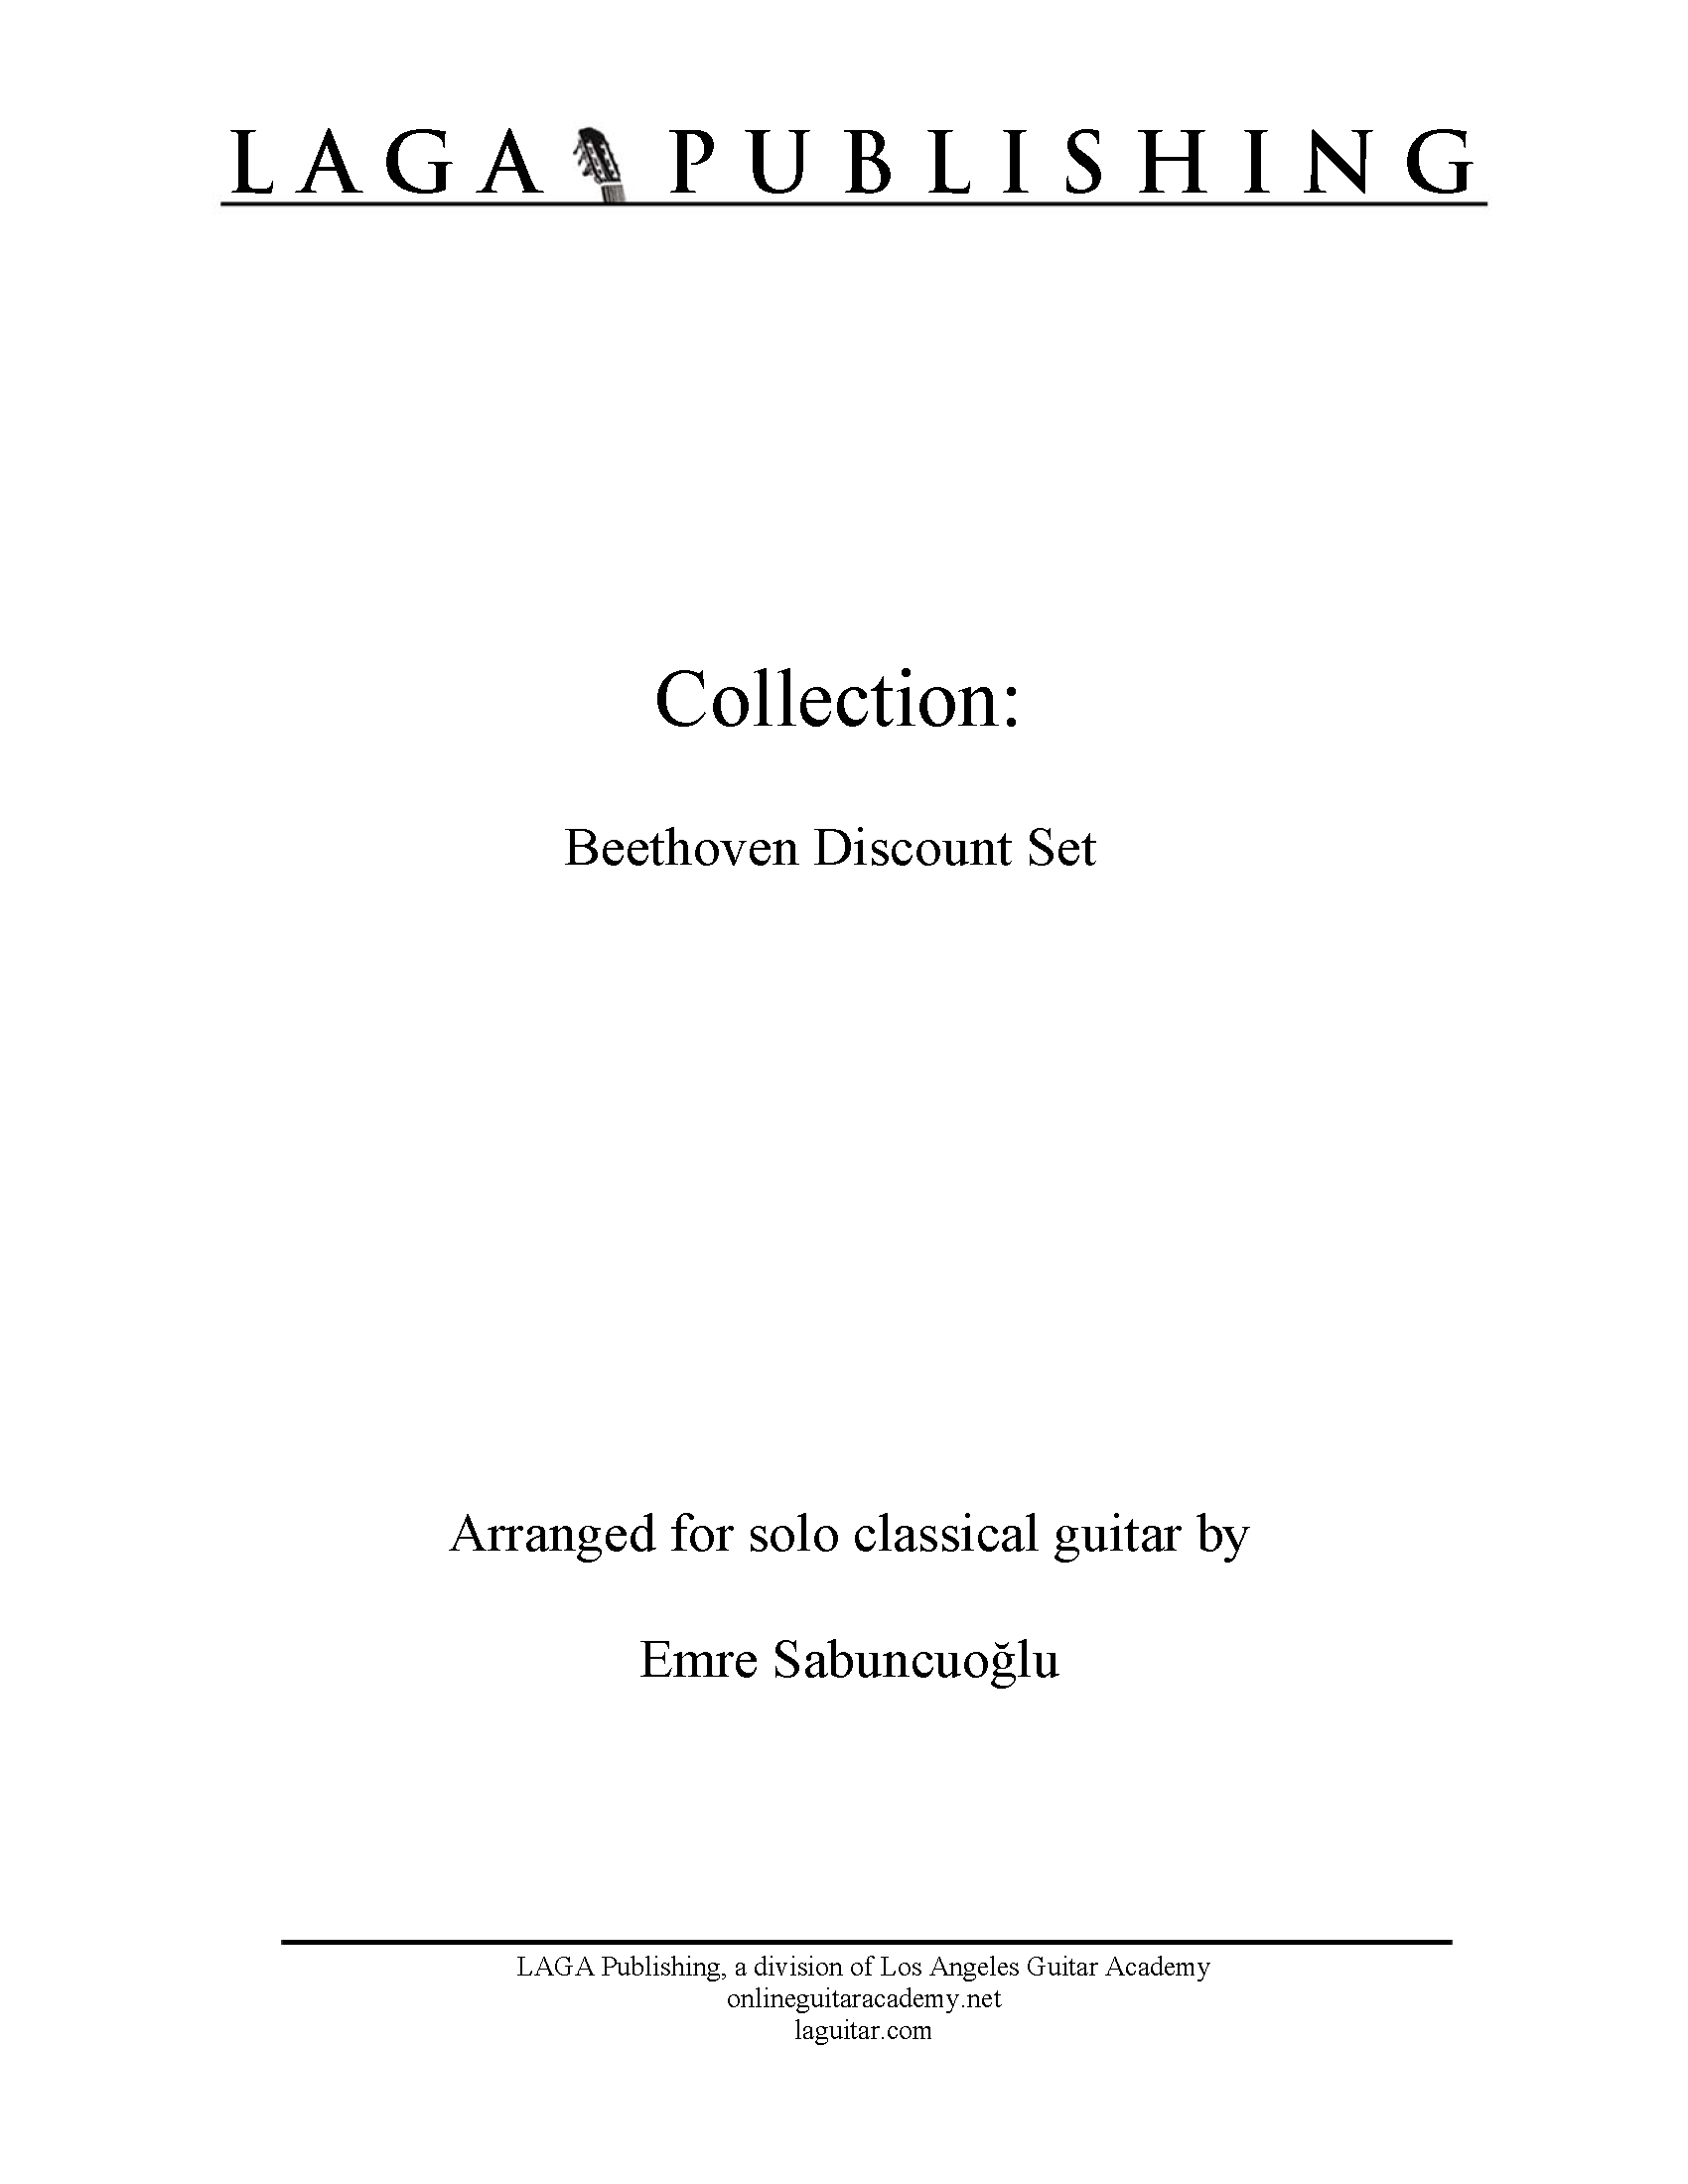 Collection: Beethoven Discount Set